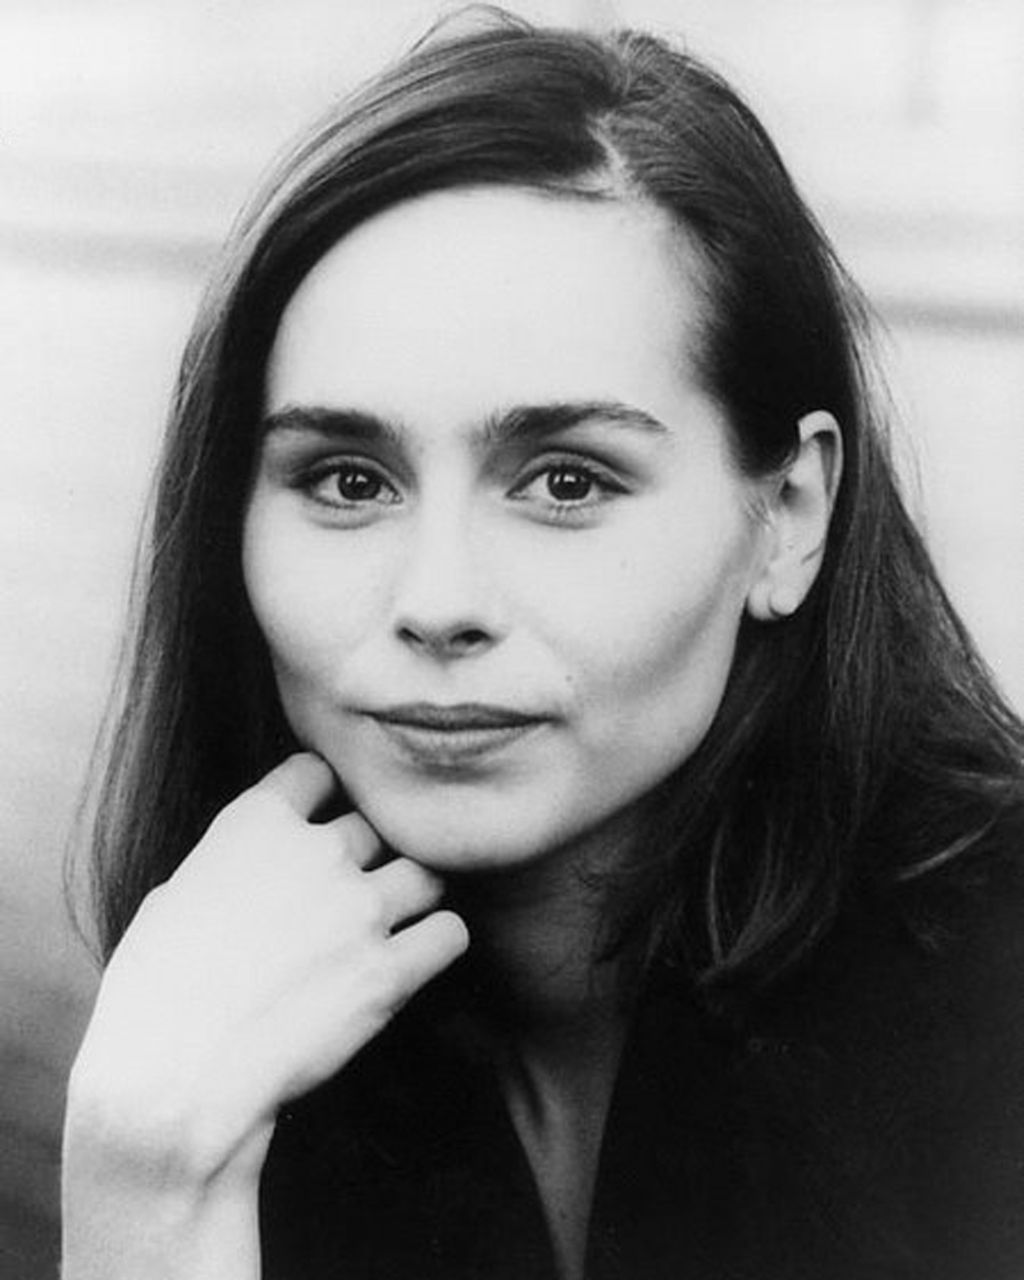 tara fitzgerald minnesotatara fitzgerald husband, tara fitzgerald photos, tara fitzgerald game of thrones, tara fitzgerald wiki, tara fitzgerald imdb, tara fitzgerald twitter, tara fitzgerald - camomile lawn, tara fitzgerald writer, tara fitzgerald obituary, tara fitzgerald minnesota, tara fitzgerald woodbury, tara fitzgerald woodbury mn, tara fitzgerald hot